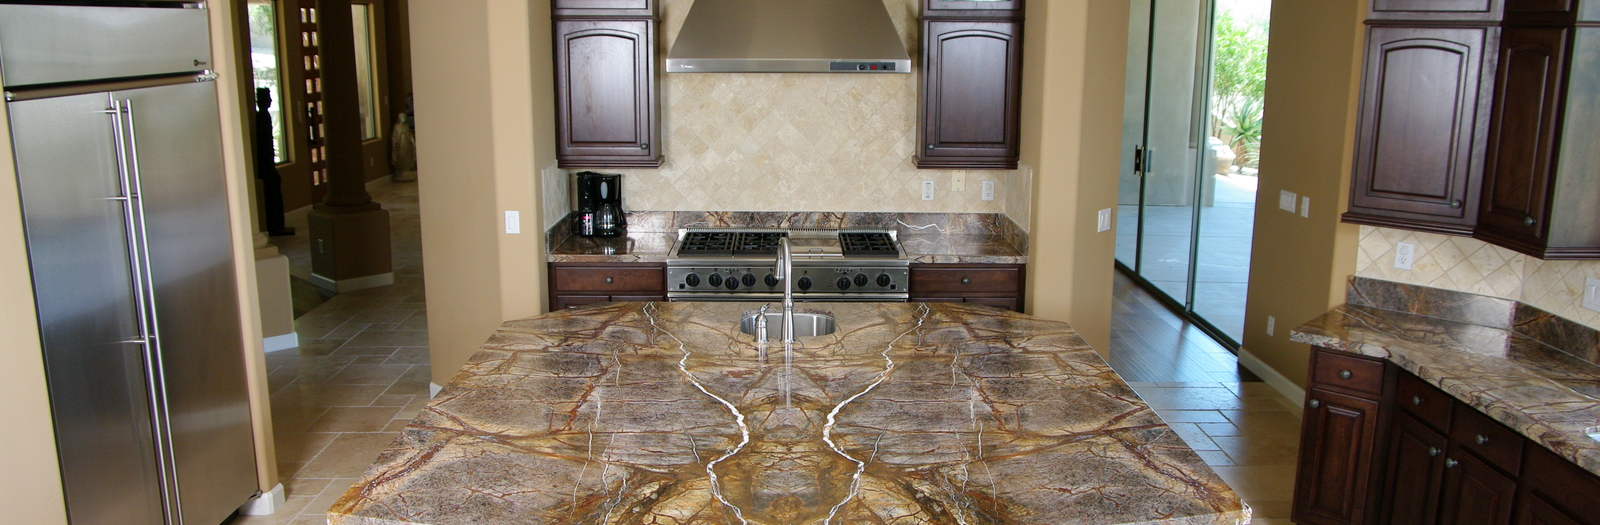 Tuscan Kitchen with stainless steel appliances